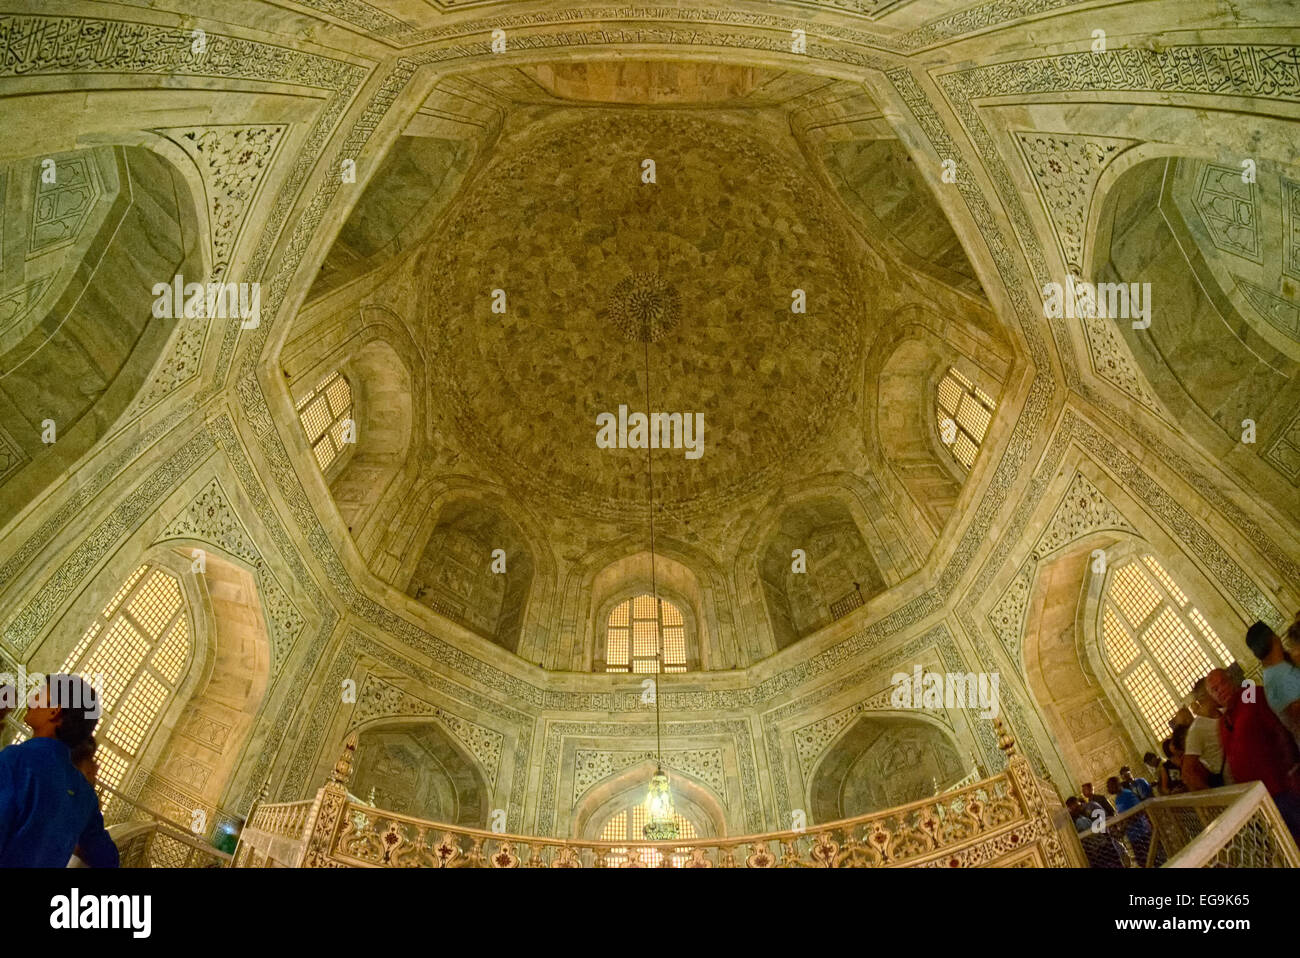 The interior hall is octagonal in shape and measures 58' in diameter and 80' in height from the pavement - Stock Image